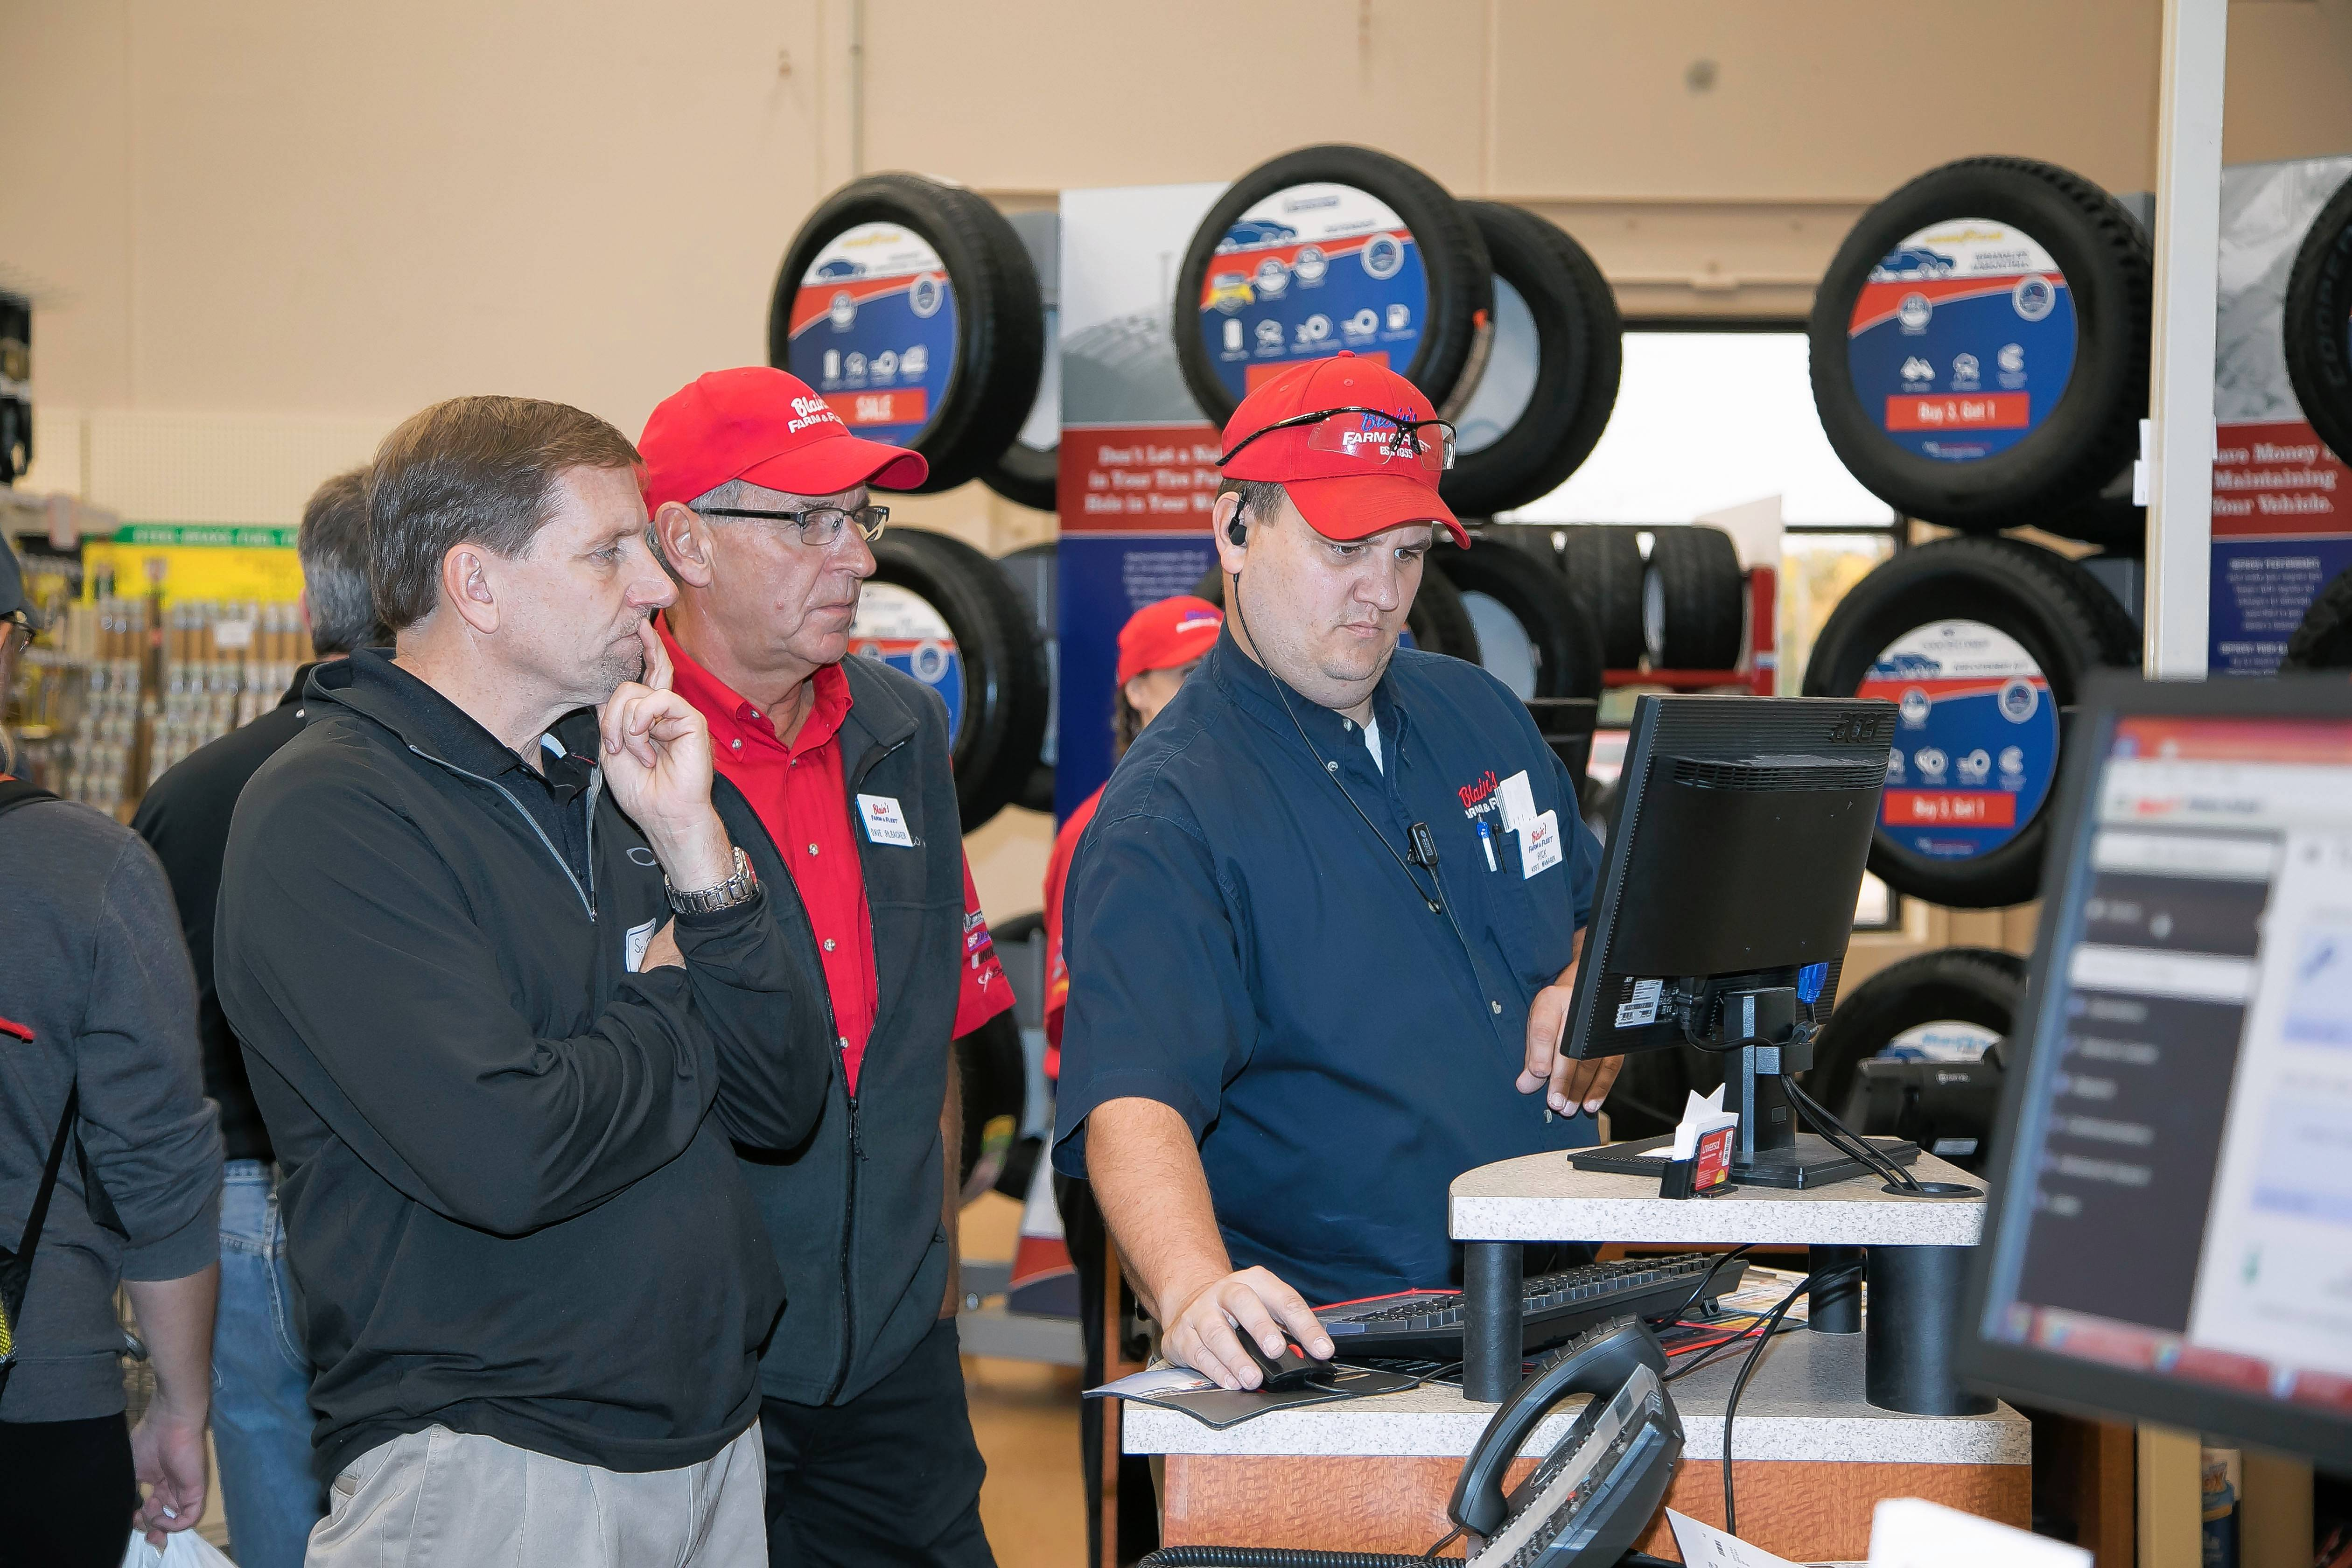 Automotive department workers help a customer at Blain's Farm & Fleet's grand opening last fall in Elgin.